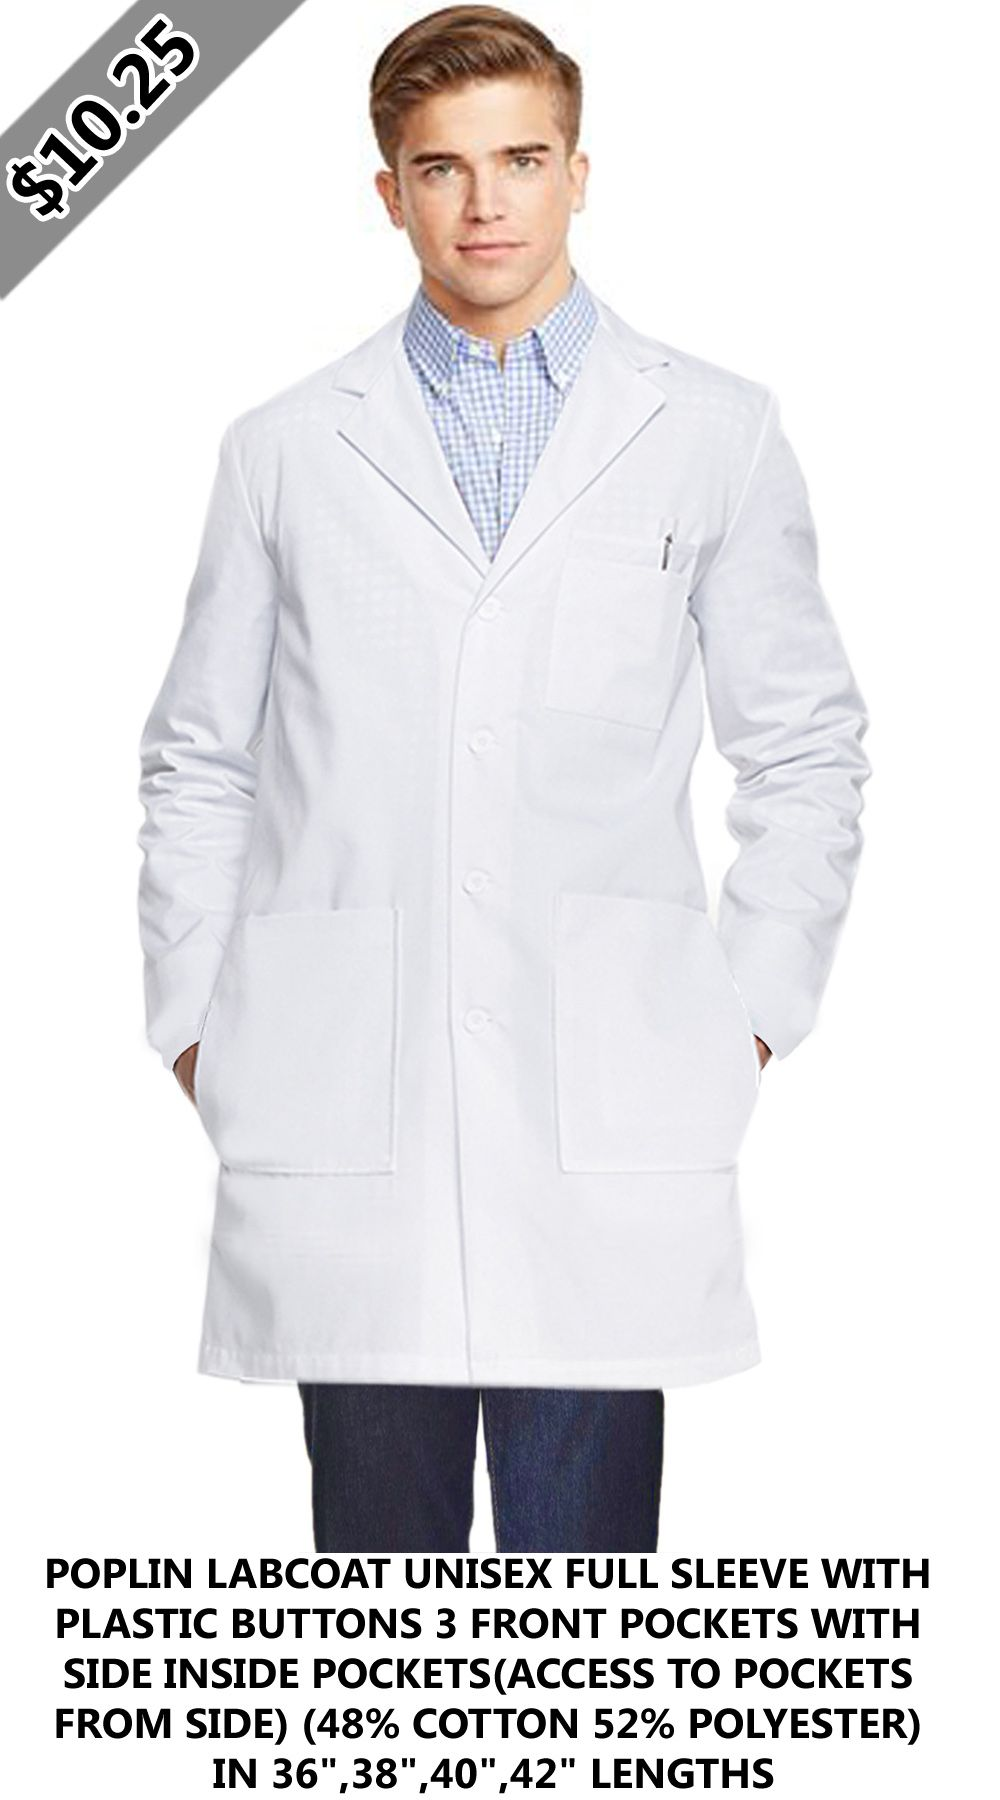 36640933a63 Poplin Labcoat Unisex full sleeve with plastic buttons | Labcoats ...